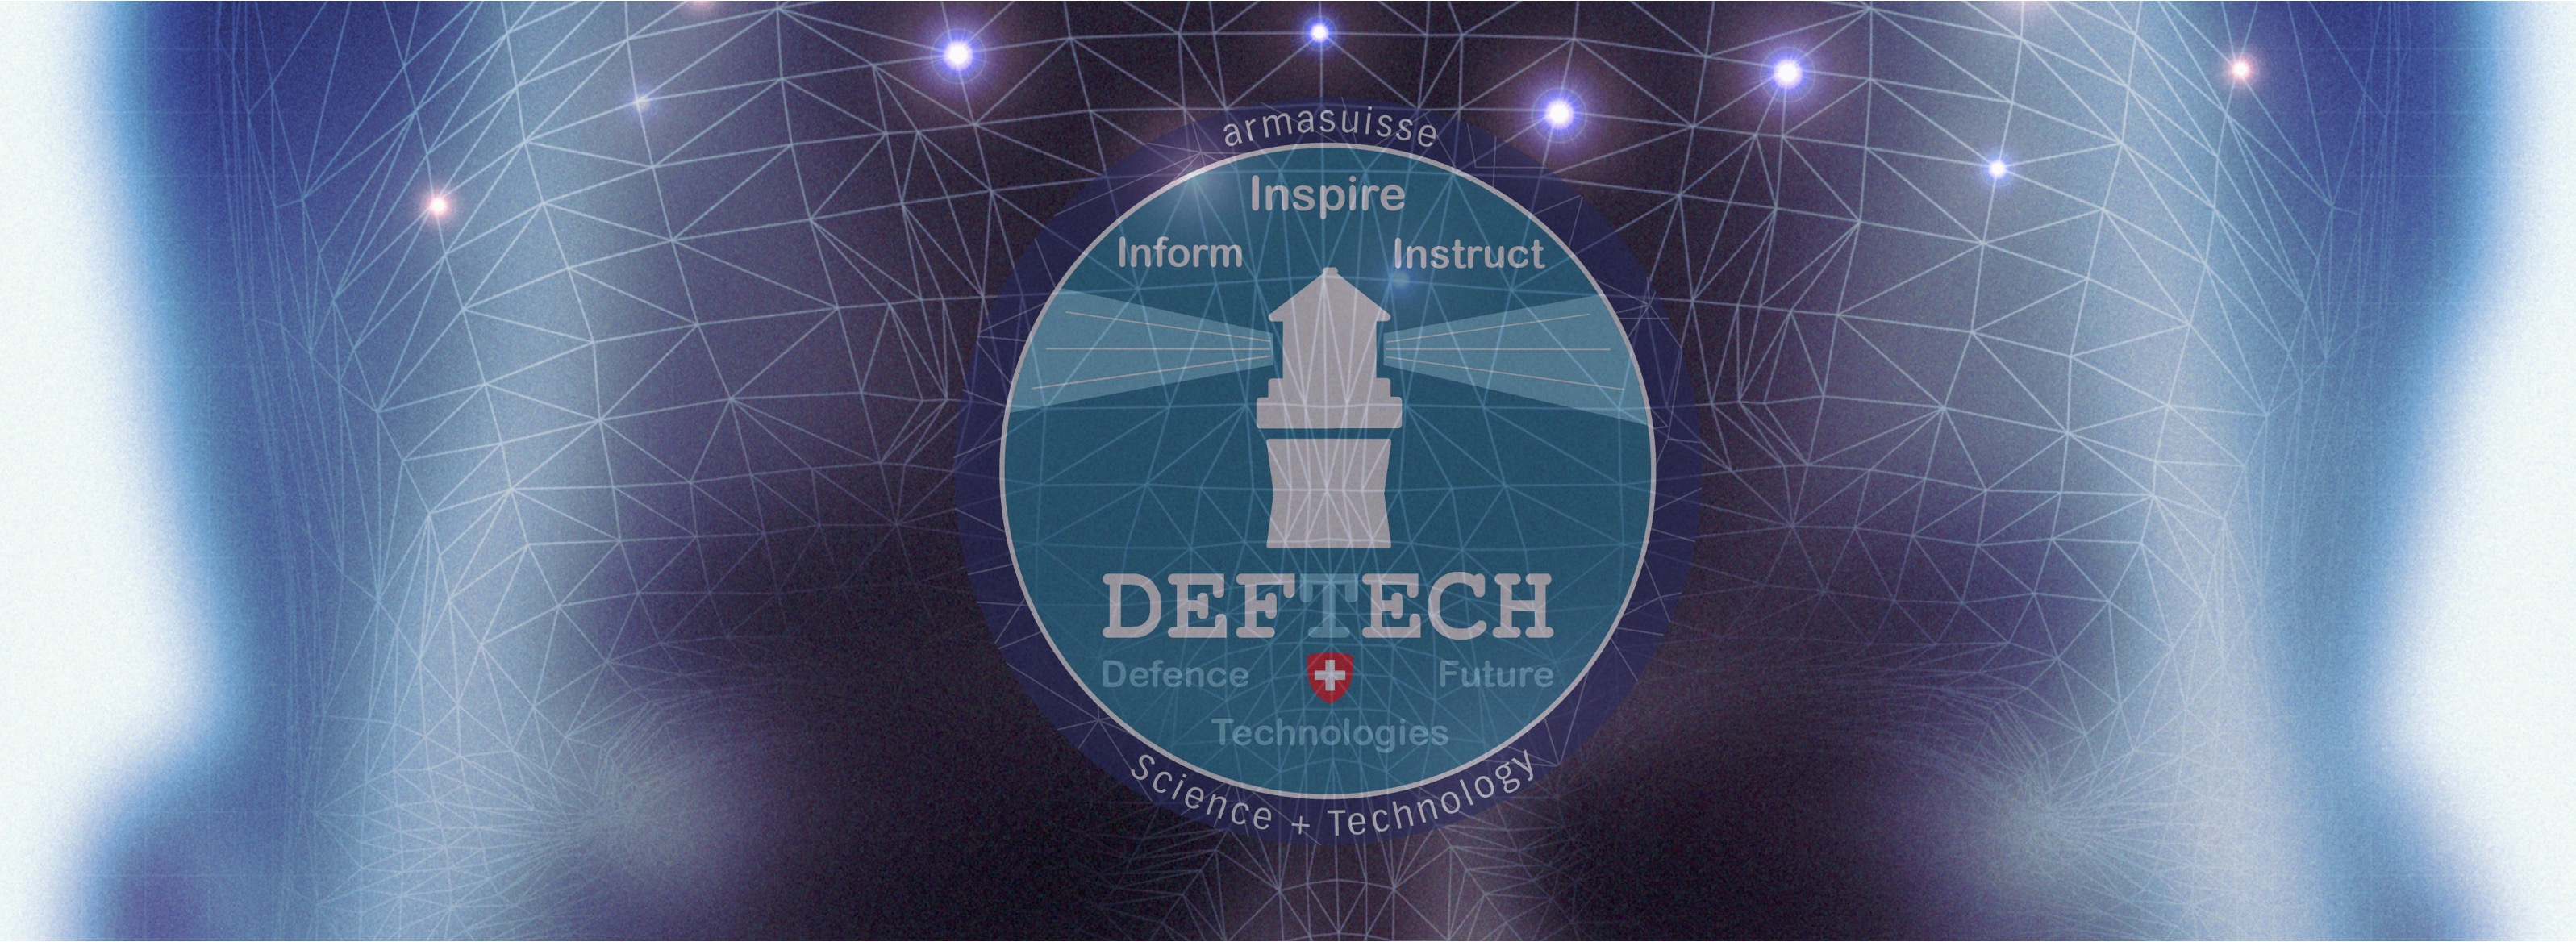 DEFTECH - Defence Future Technologies - Technology Foresight - armasuisse Science & Technology